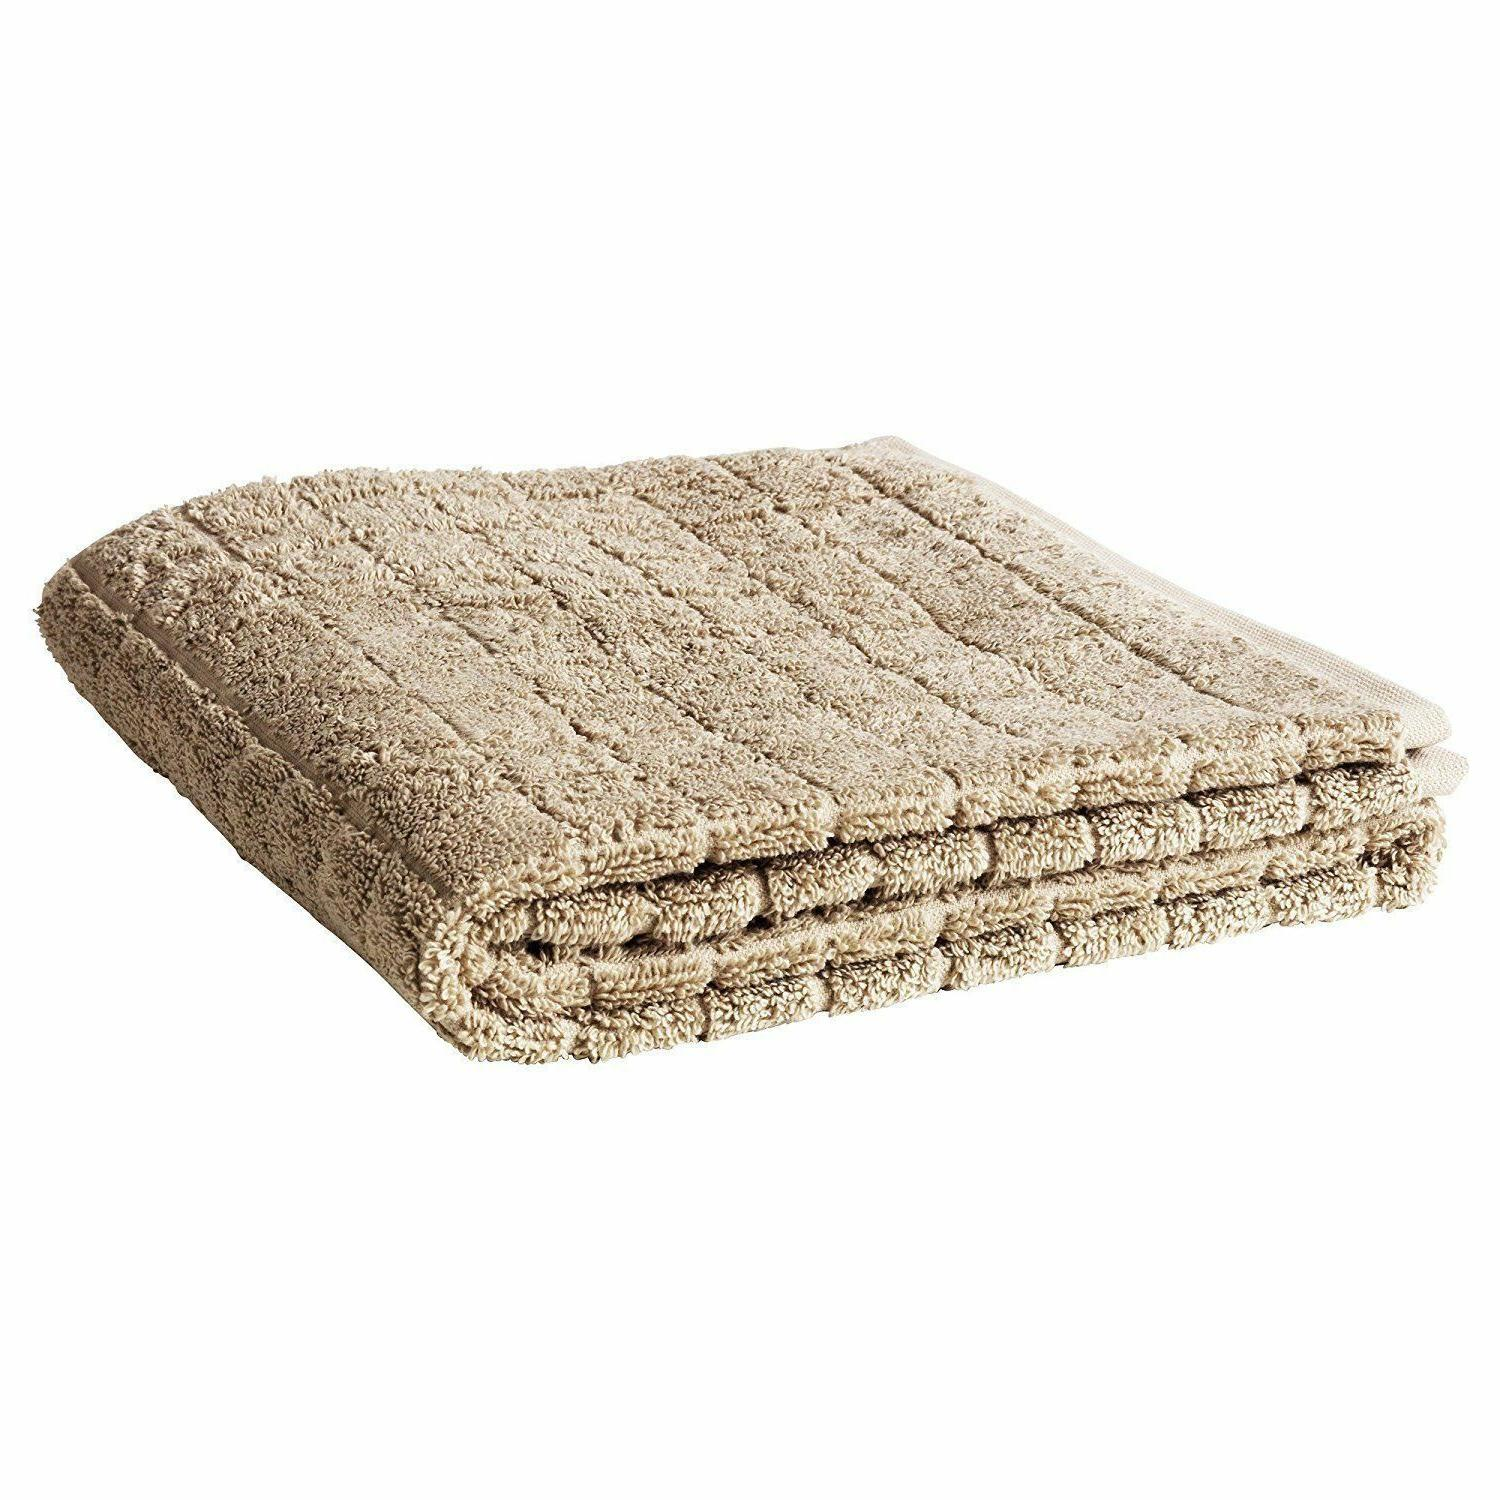 IKEA AFJARDEN BEIGE NATURAL THICK BATH HAND FACE TOWELS 100%